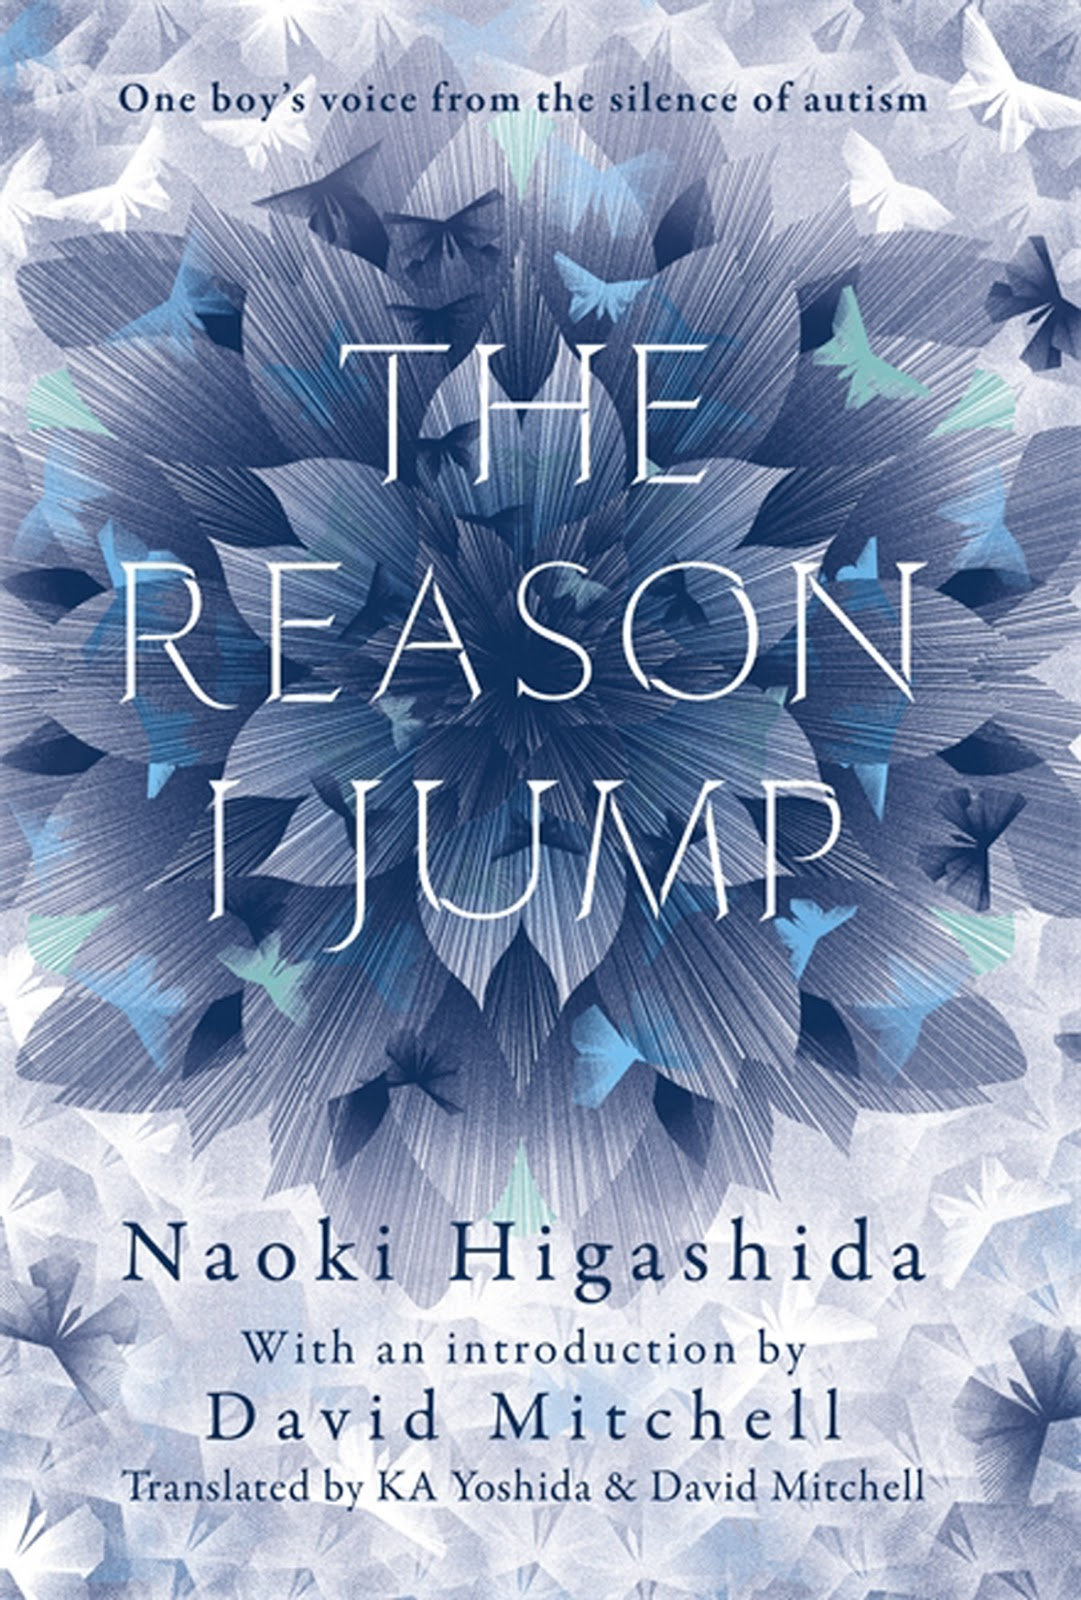 The Reason I Jump by Naoki Higashida and David Mitchell